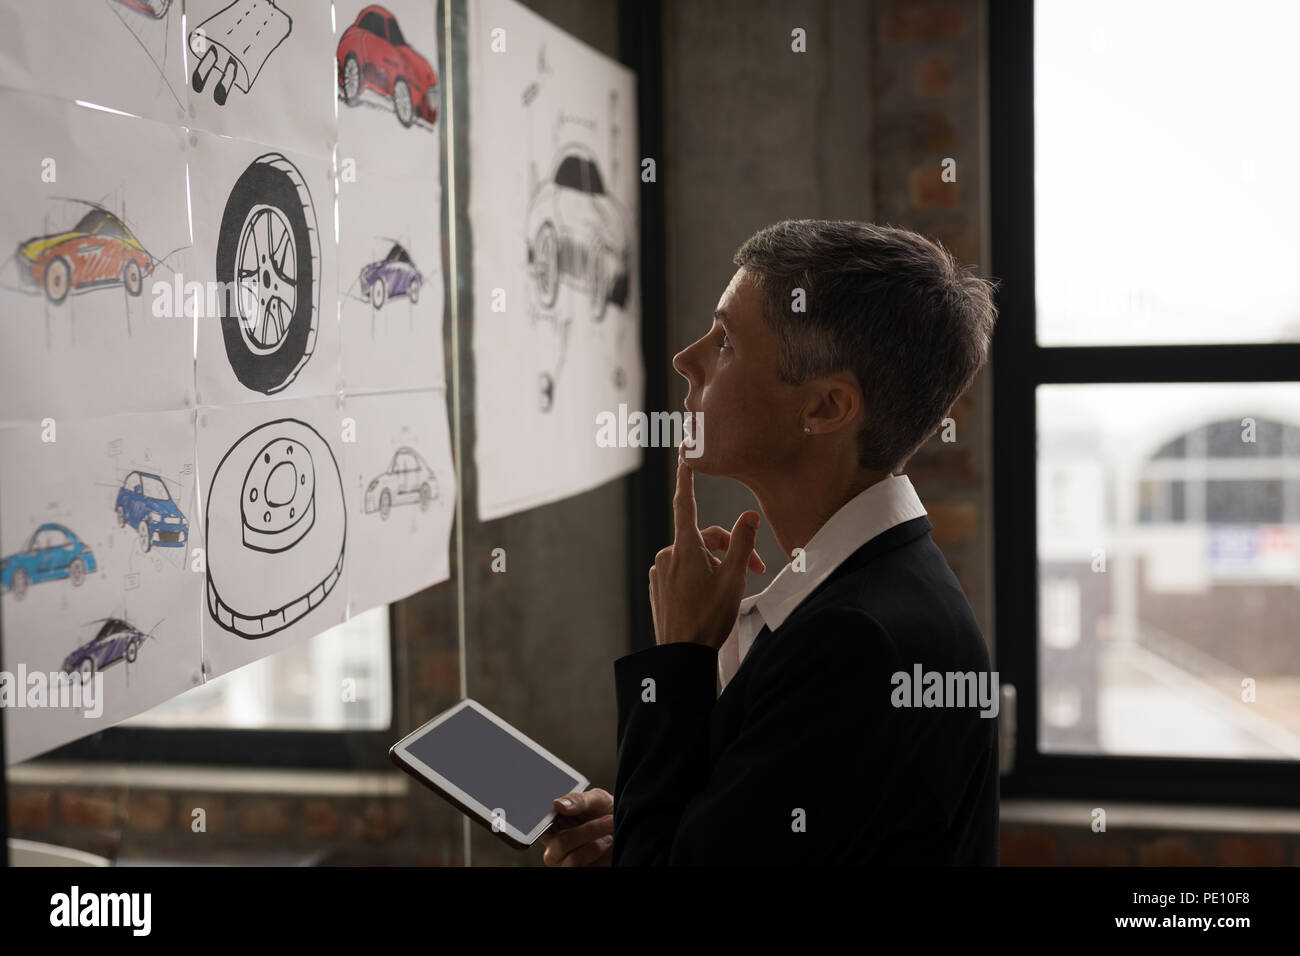 Businesswoman looking at chart Photo Stock